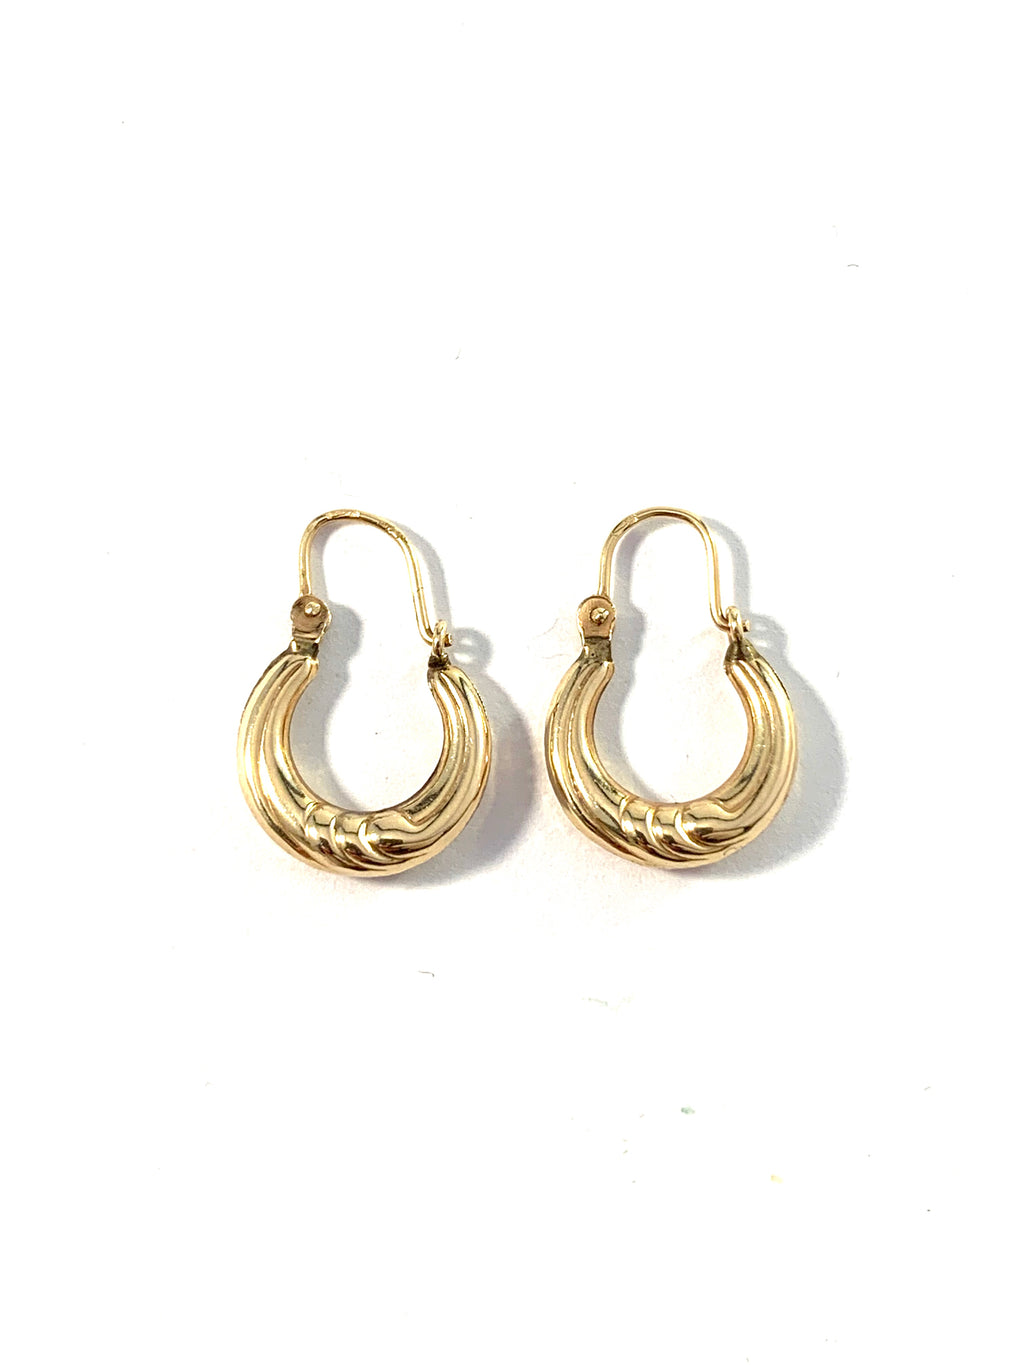 Vintage Mid Century 14k Gold Hollow Earrings. Possibly Austria.